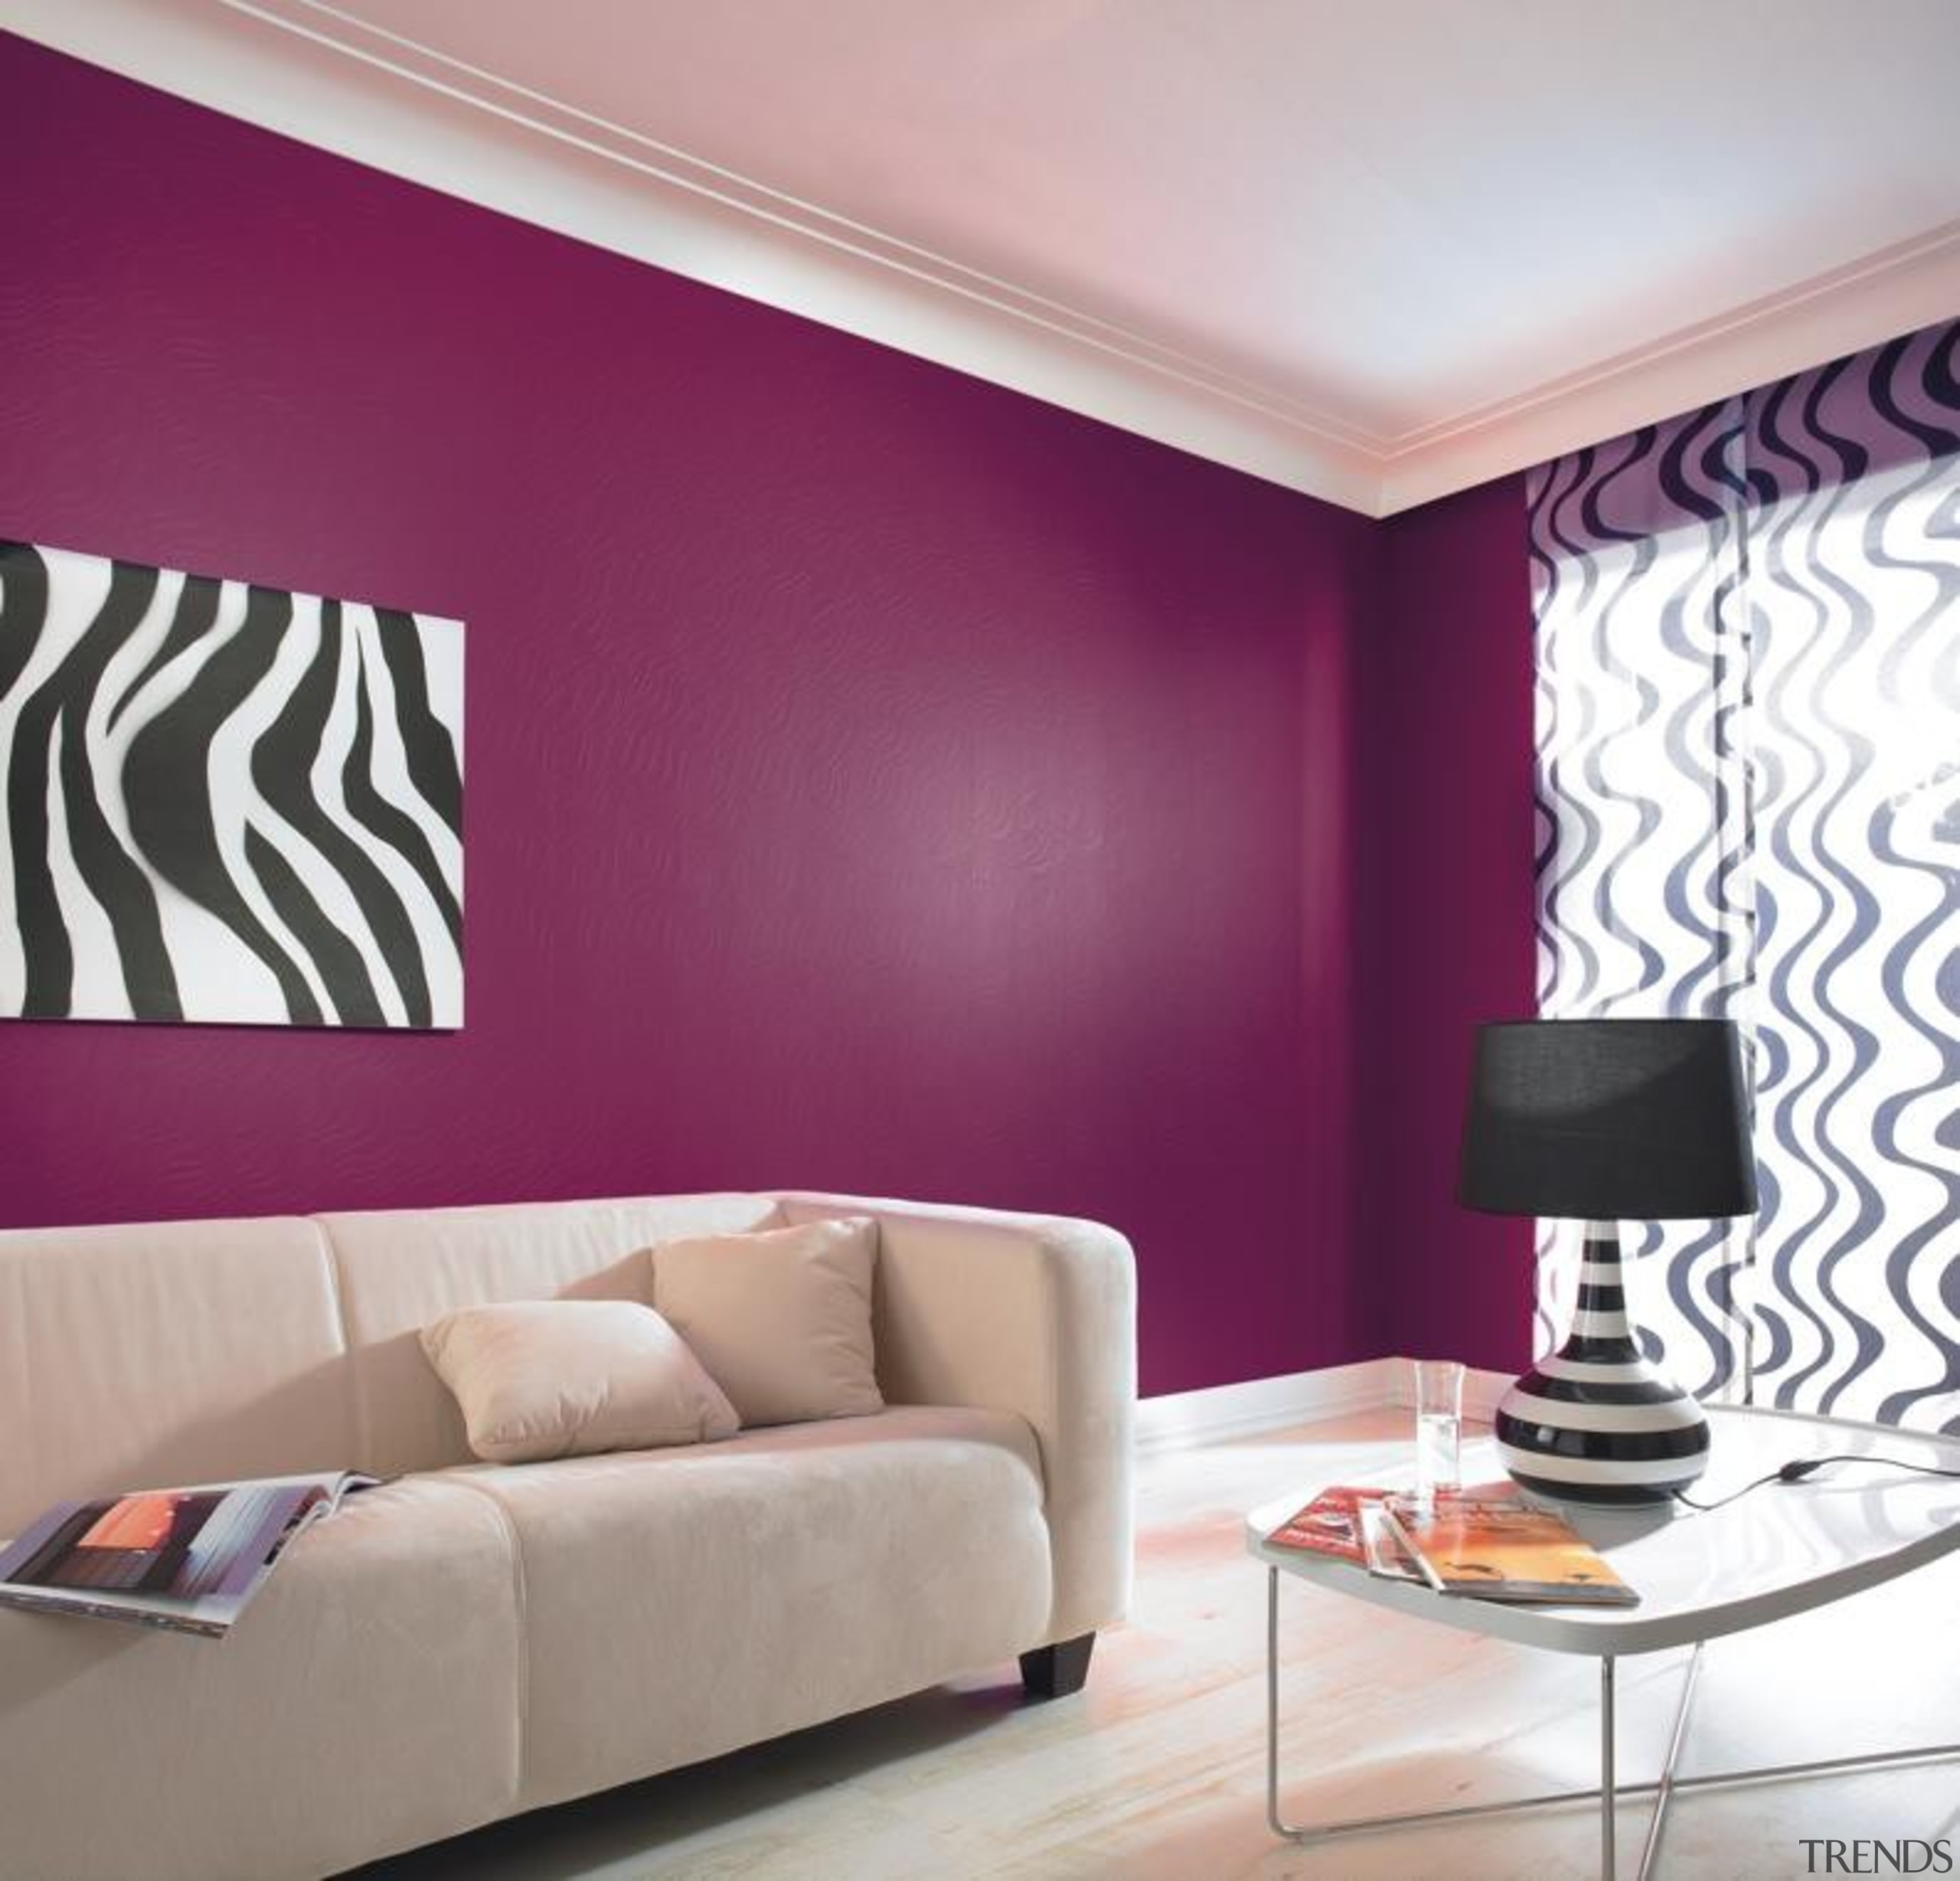 Wallton Painton Range - Wallton Painton Range - ceiling, curtain, interior design, living room, pink, purple, room, wall, wallpaper, window blind, window covering, window treatment, gray, purple